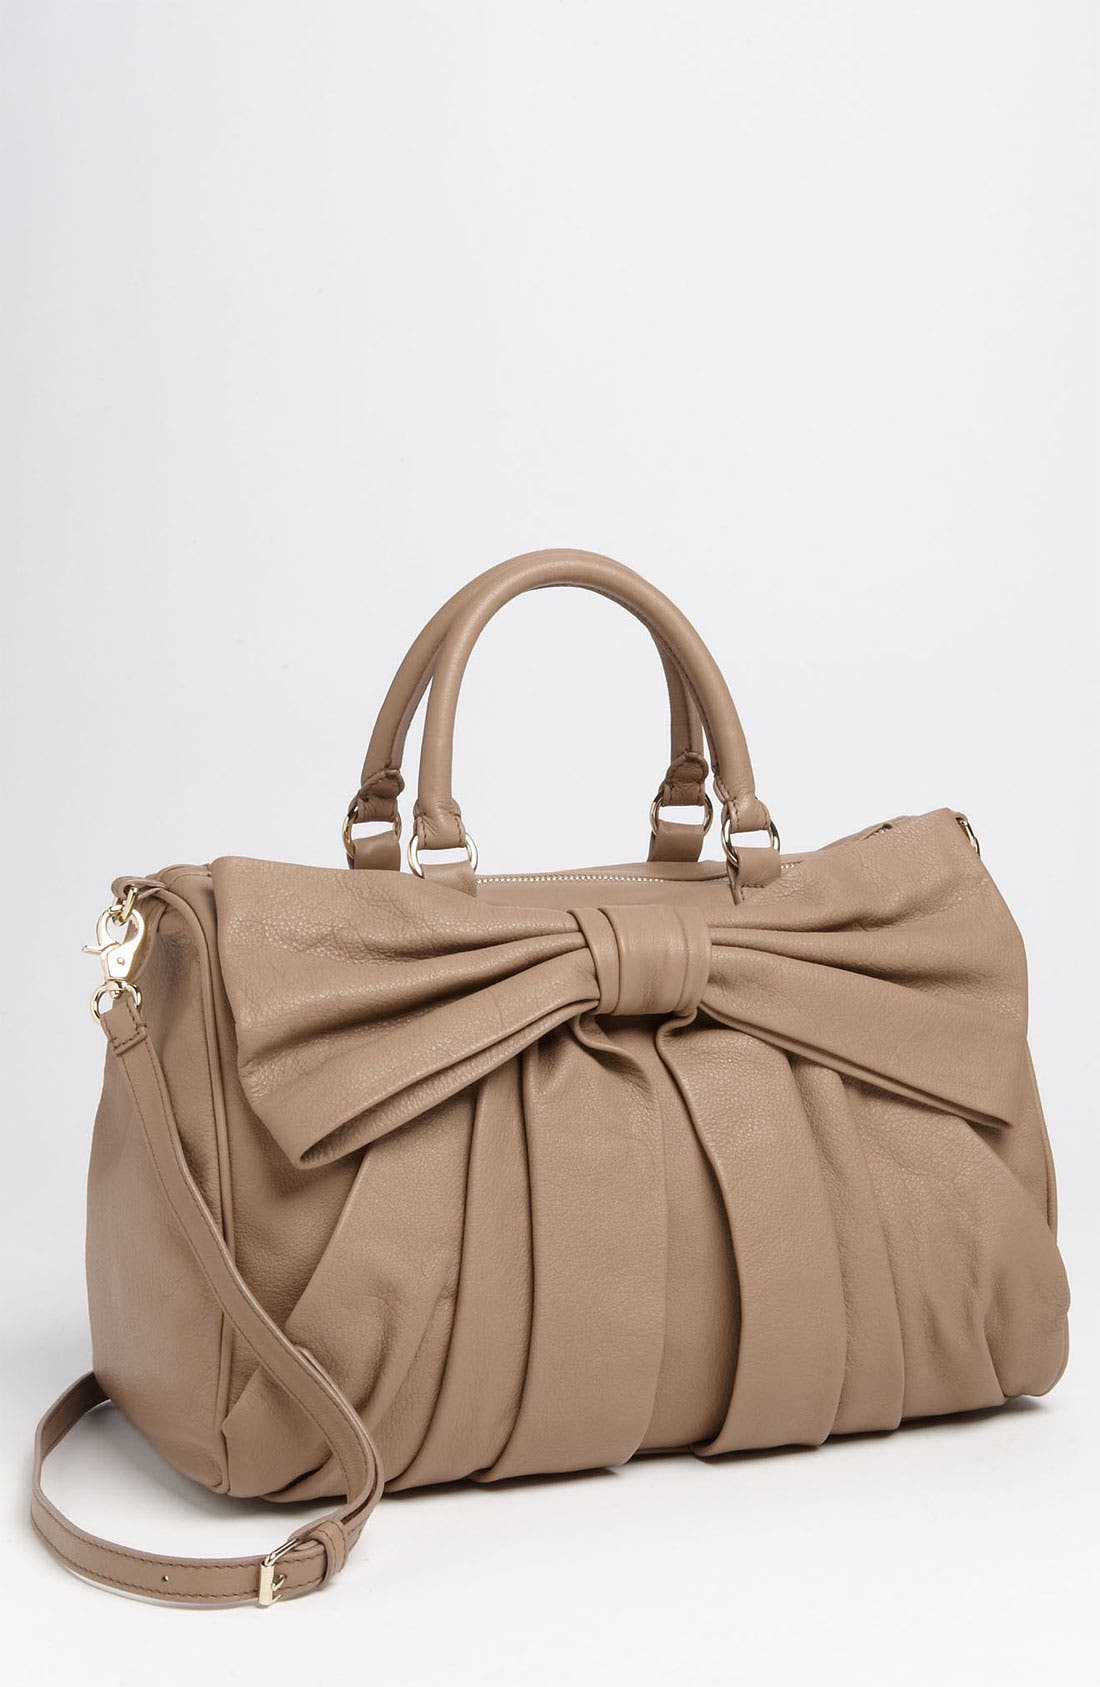 Alternate Image 1 Selected - RED Valentino 'Bow' Leather Bowler Bag